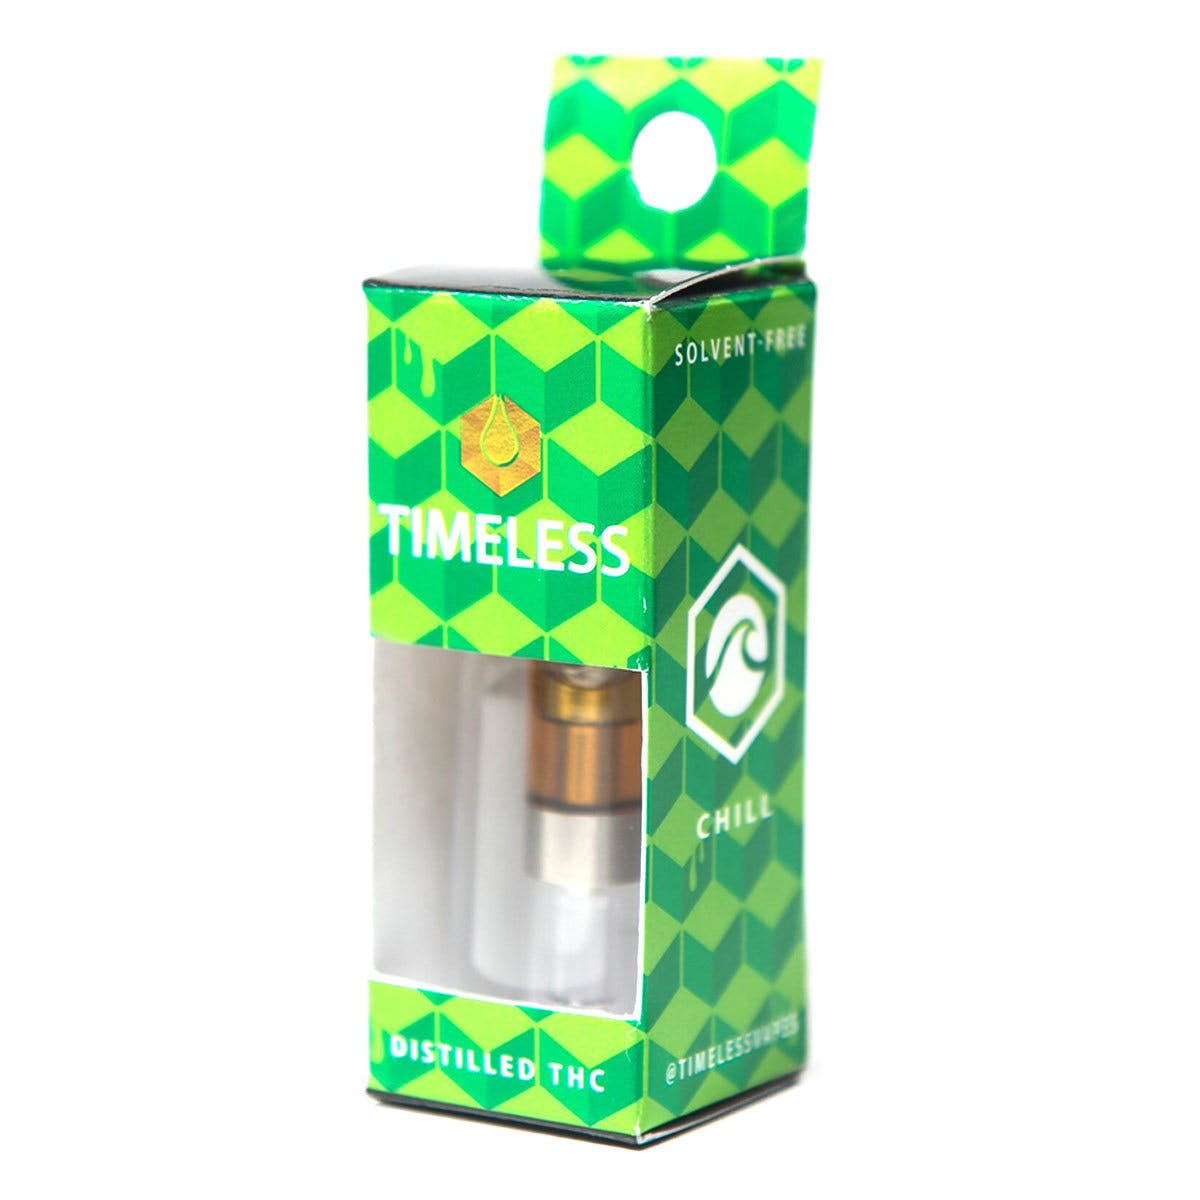 concentrate-timeless-vapes-500mg-tangerine-dream-vape-cartridge-chill